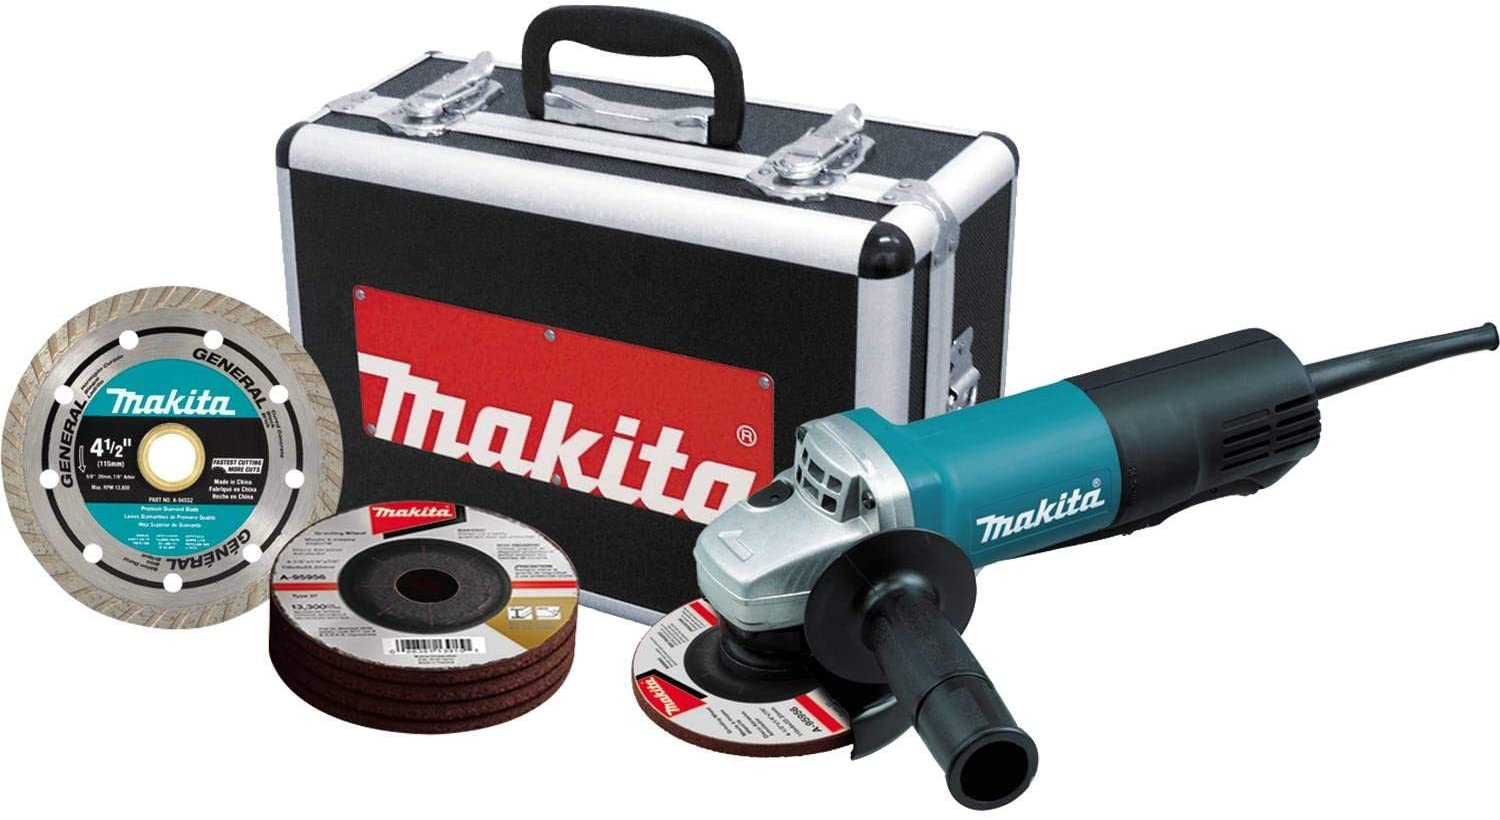 Makita 4 1/2 Paddle Switch Angle Grinder